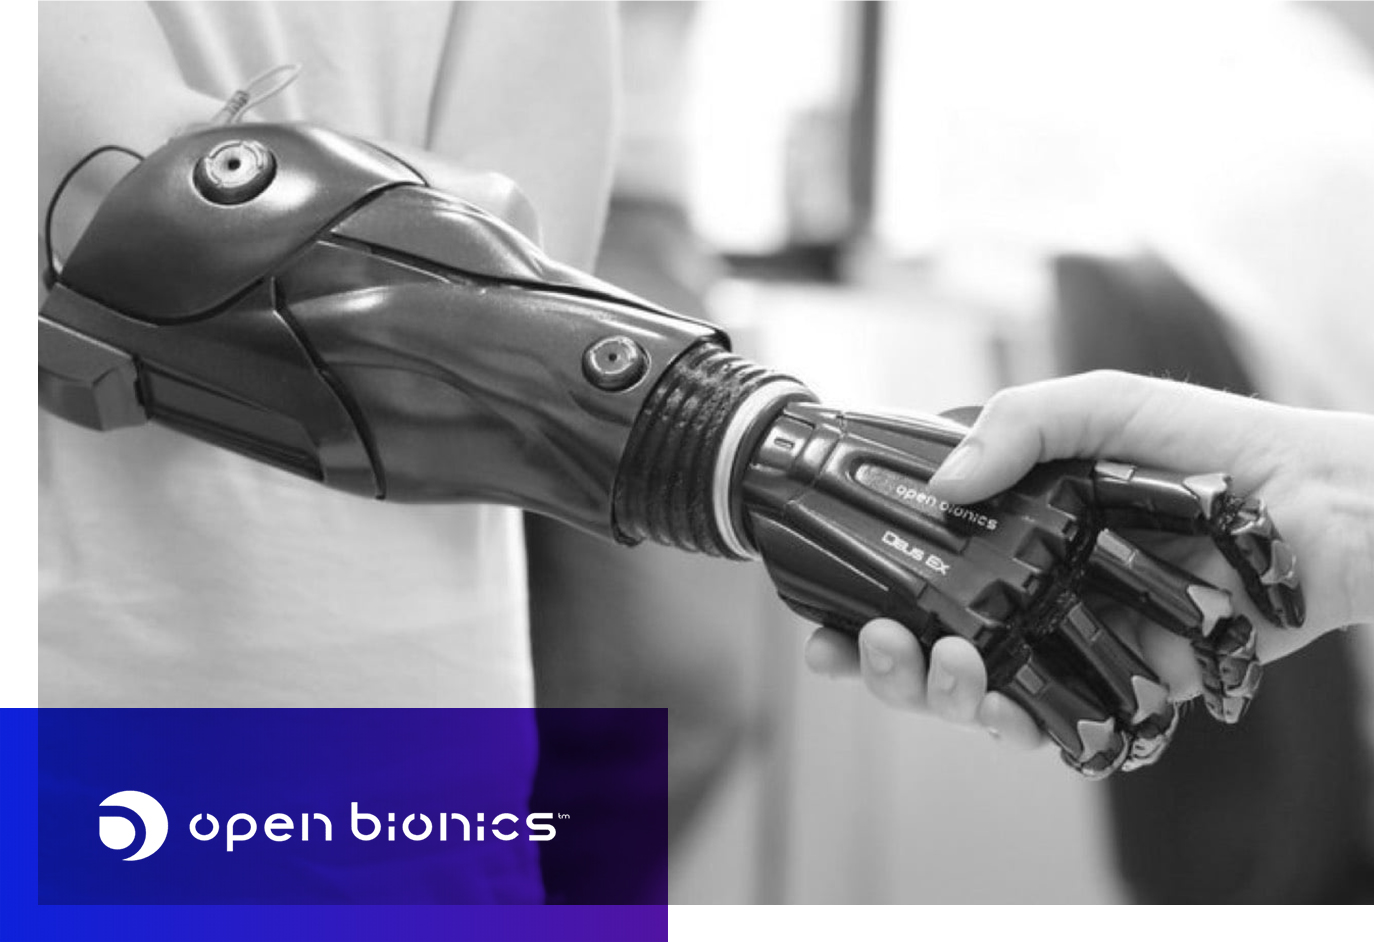 Open bionics visual